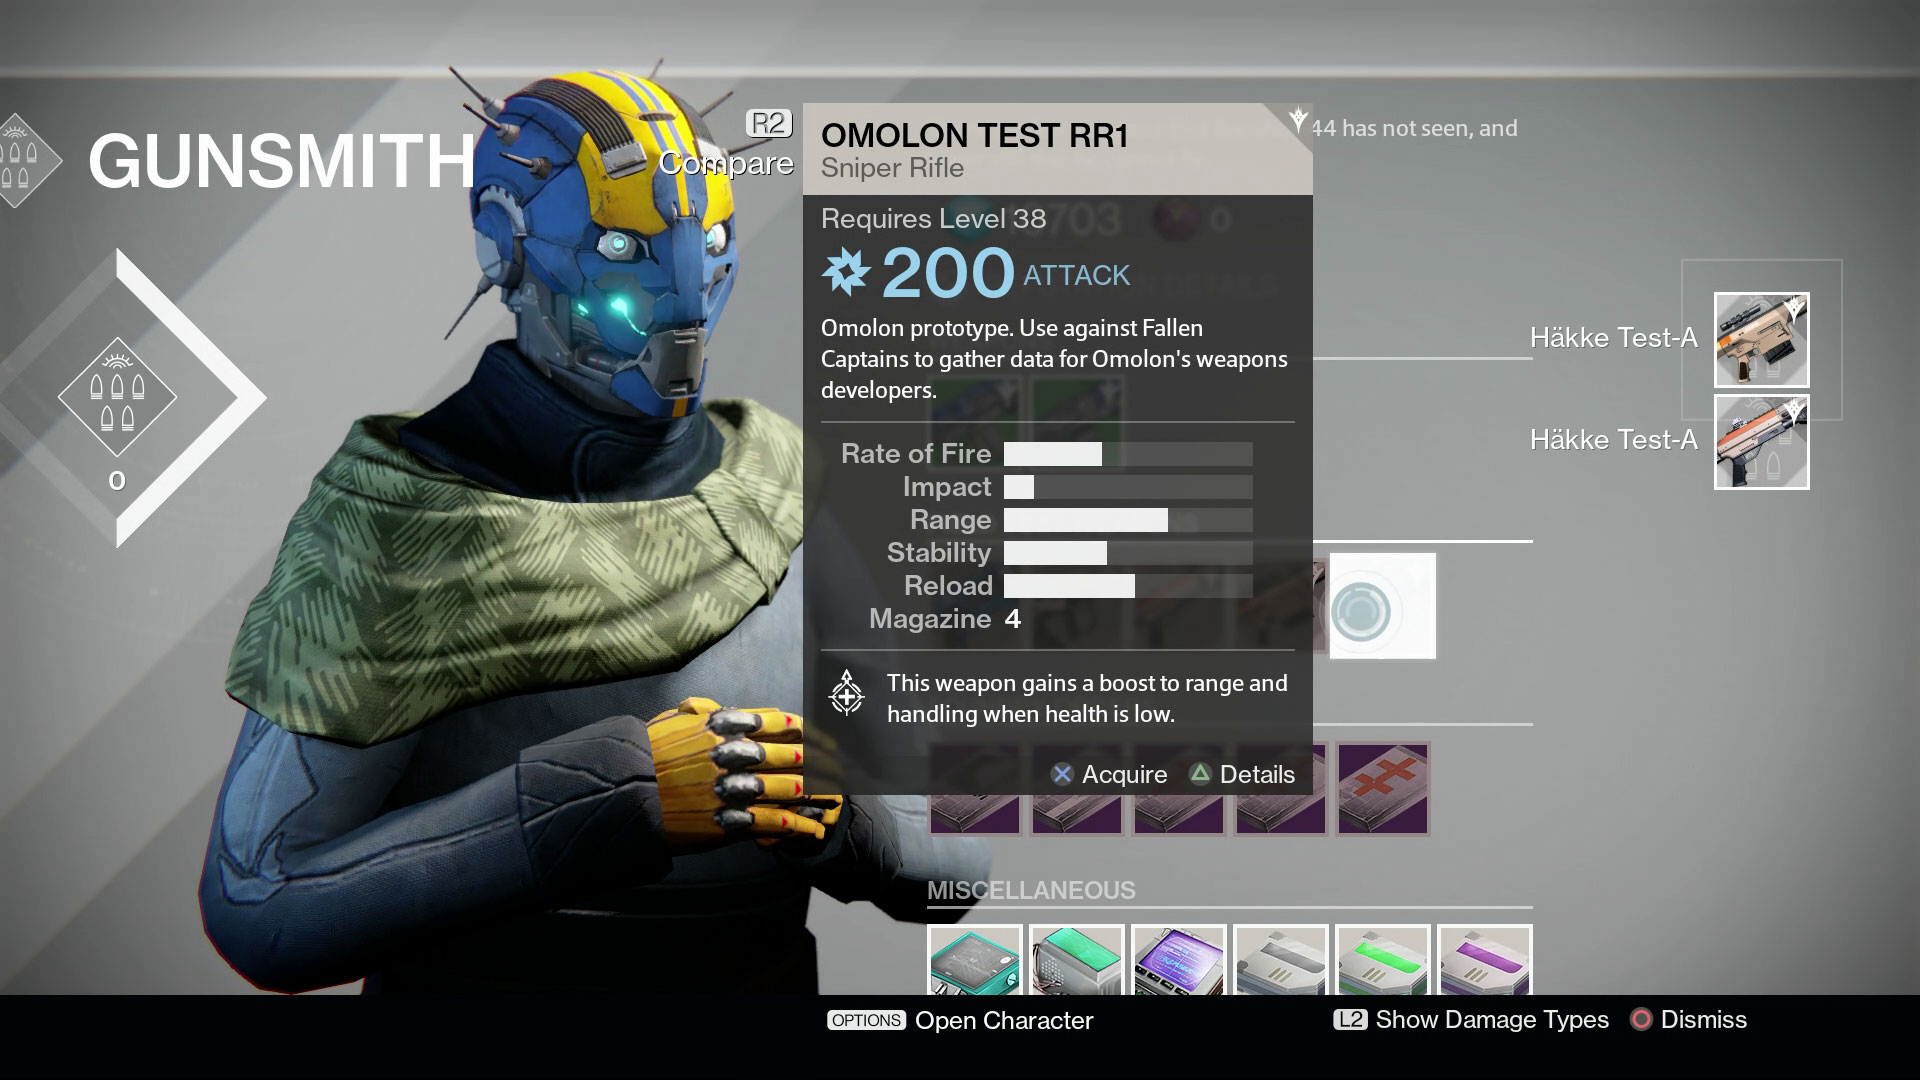 Gunsmith weapon field test tasks guide destiny malvernweather Image collections